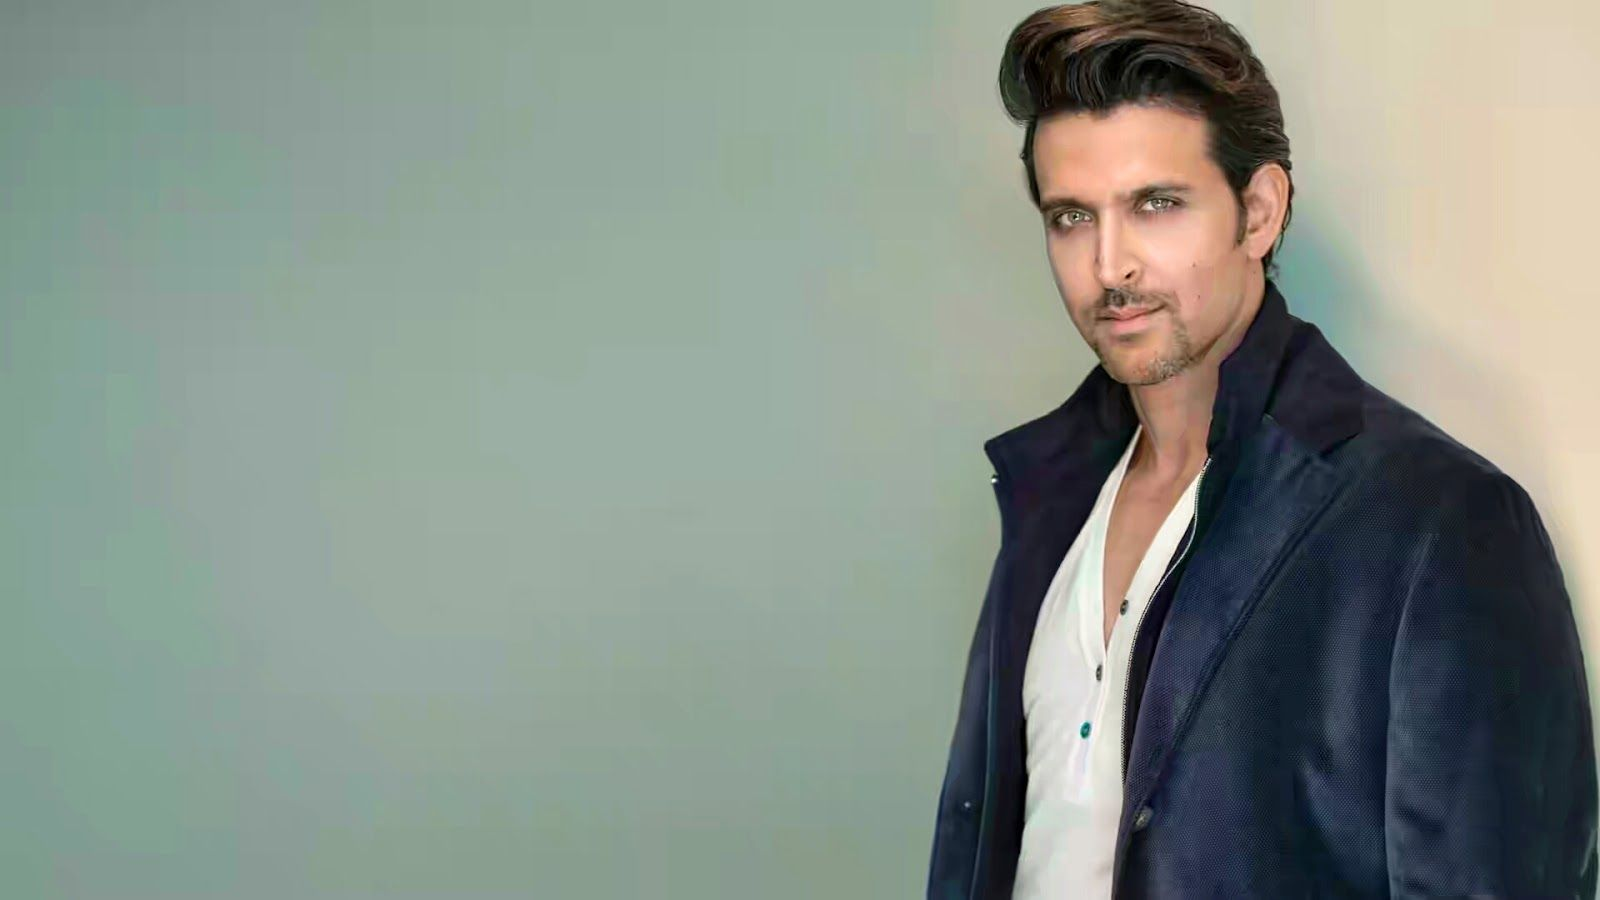 Hrithik Roshan Wallpapers Hd Download Free 1080p In 2019